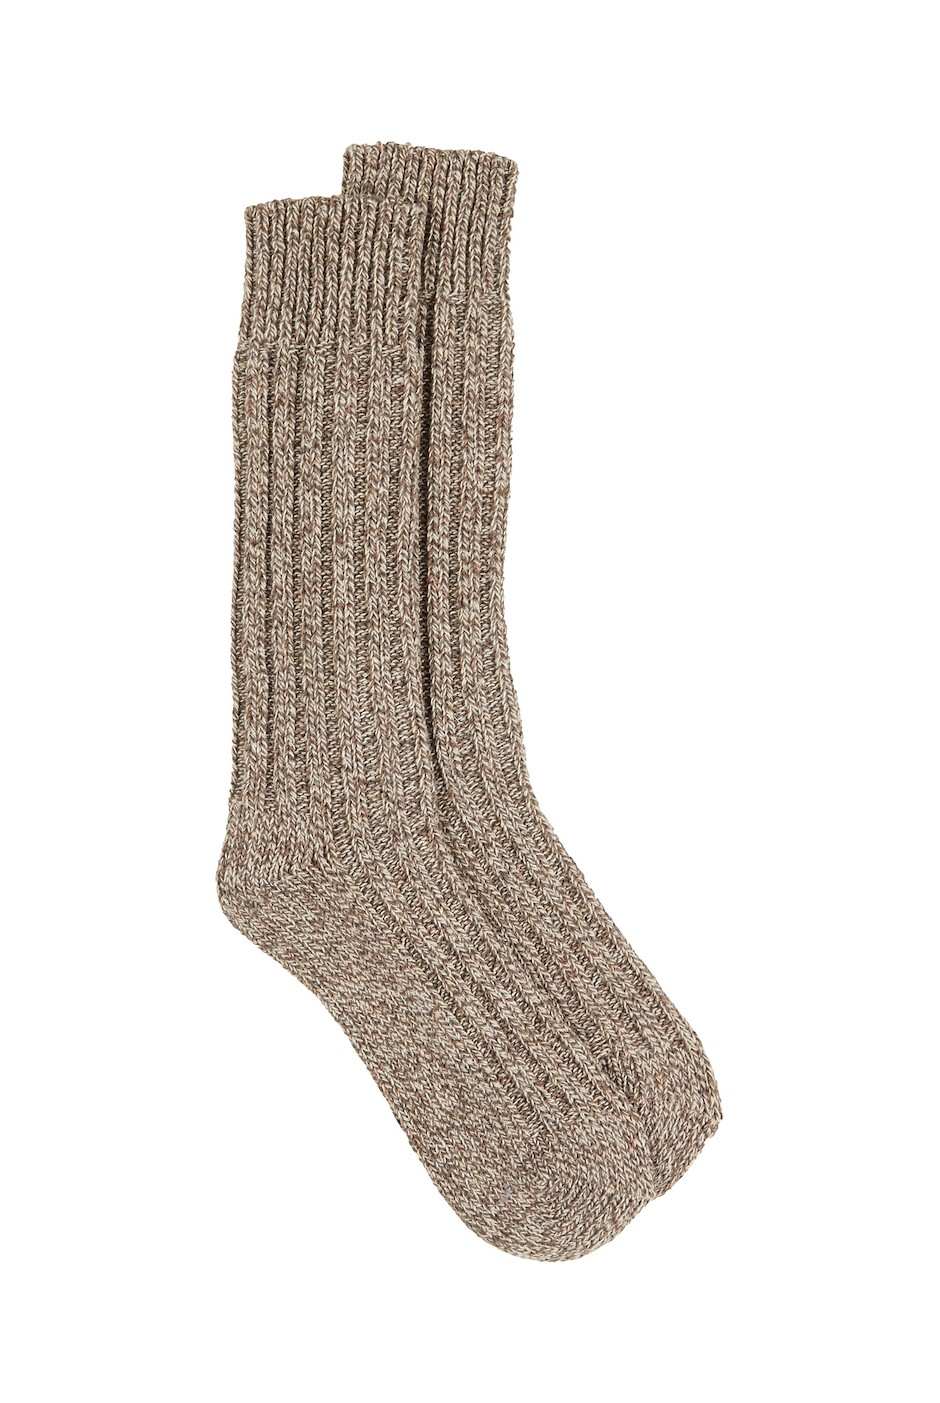 Muckish Chunky Rib Walking Sock Toast